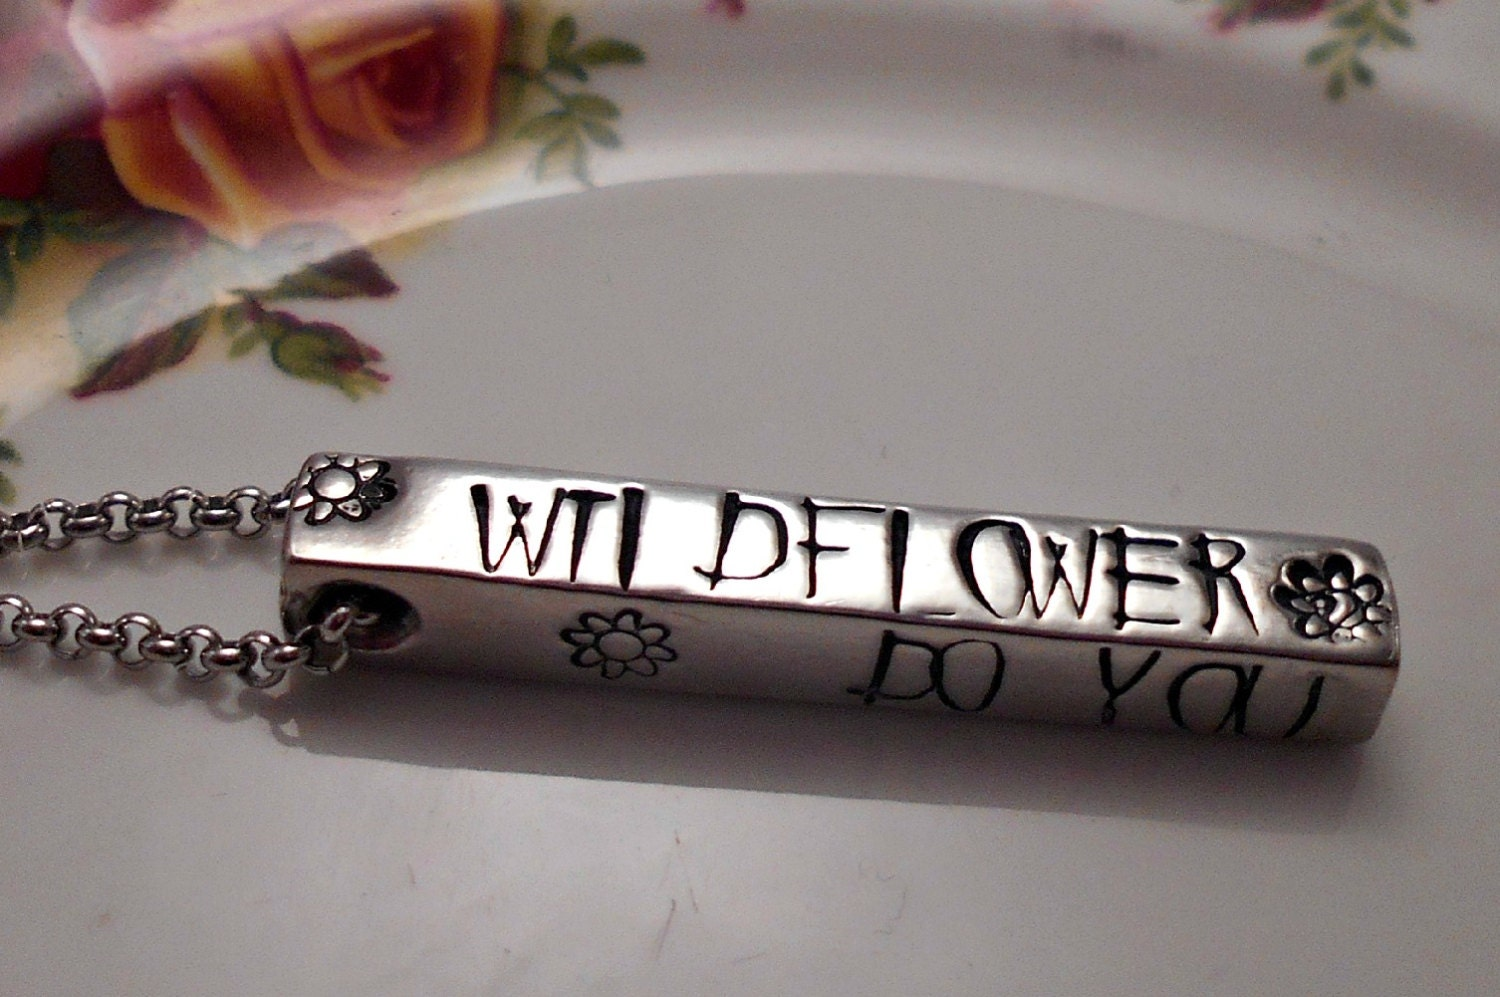 Alice in Wonderland Wildflower Necklace Alice in Wonderland Jewelry Alice Necklace Sister Jewelry Necklaces Jewellery for Teenagers